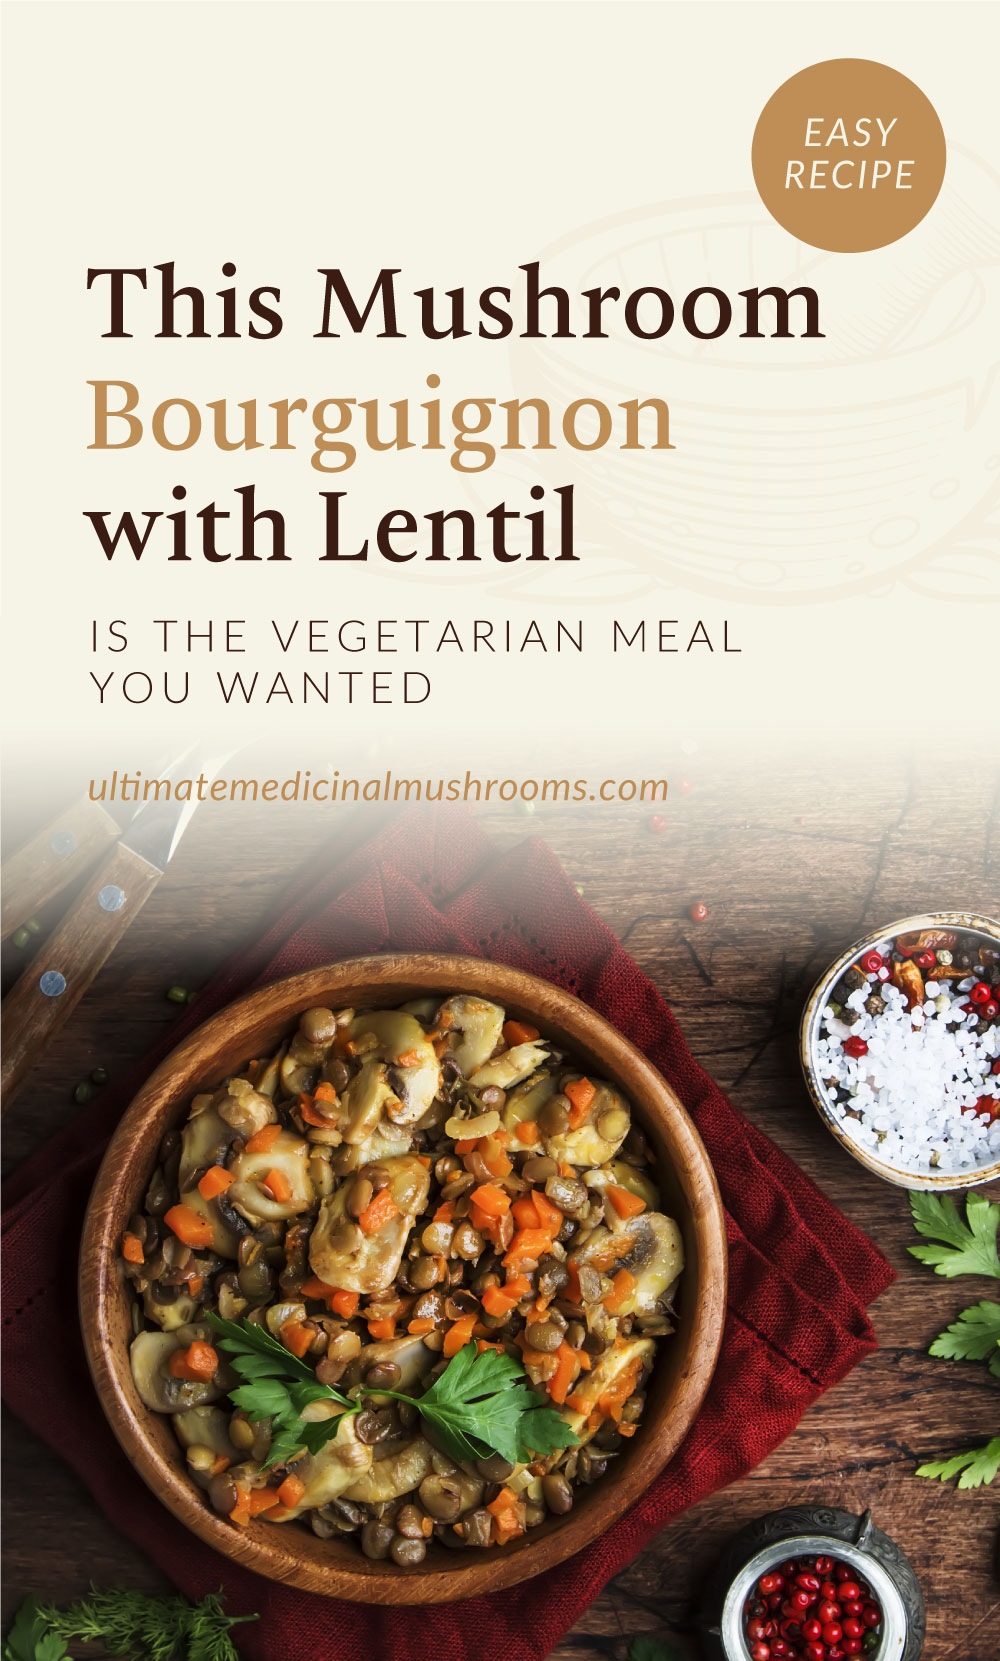 """Text area which says """"This Mushroom Bourguignon with Lentil is the Vegetarian Meal You Wanted, ultimatemedicinalmushrooms.com"""" followed by a top view of a mushroom and lentil dish in a bowl surrounded by spices and other ingredients on a wooden table"""